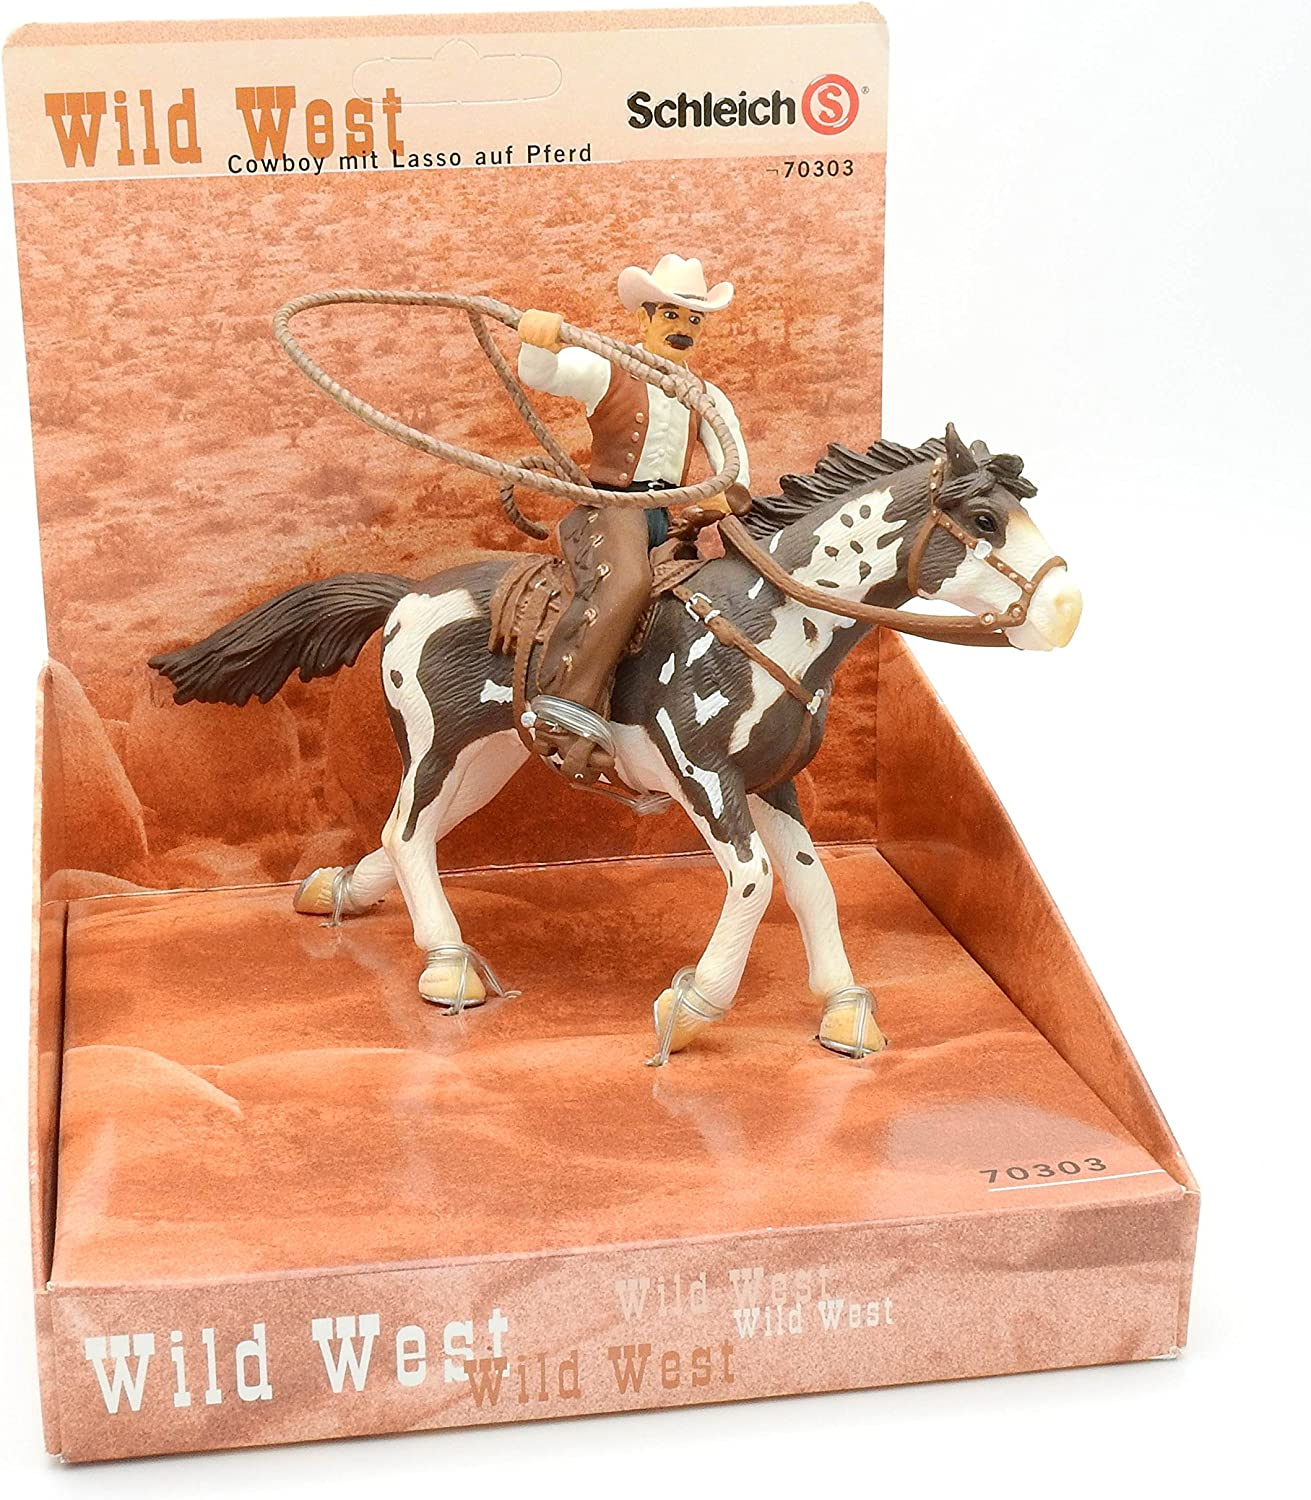 Schleich Farm World 41416 Saddle bronc riding mit Cowboy